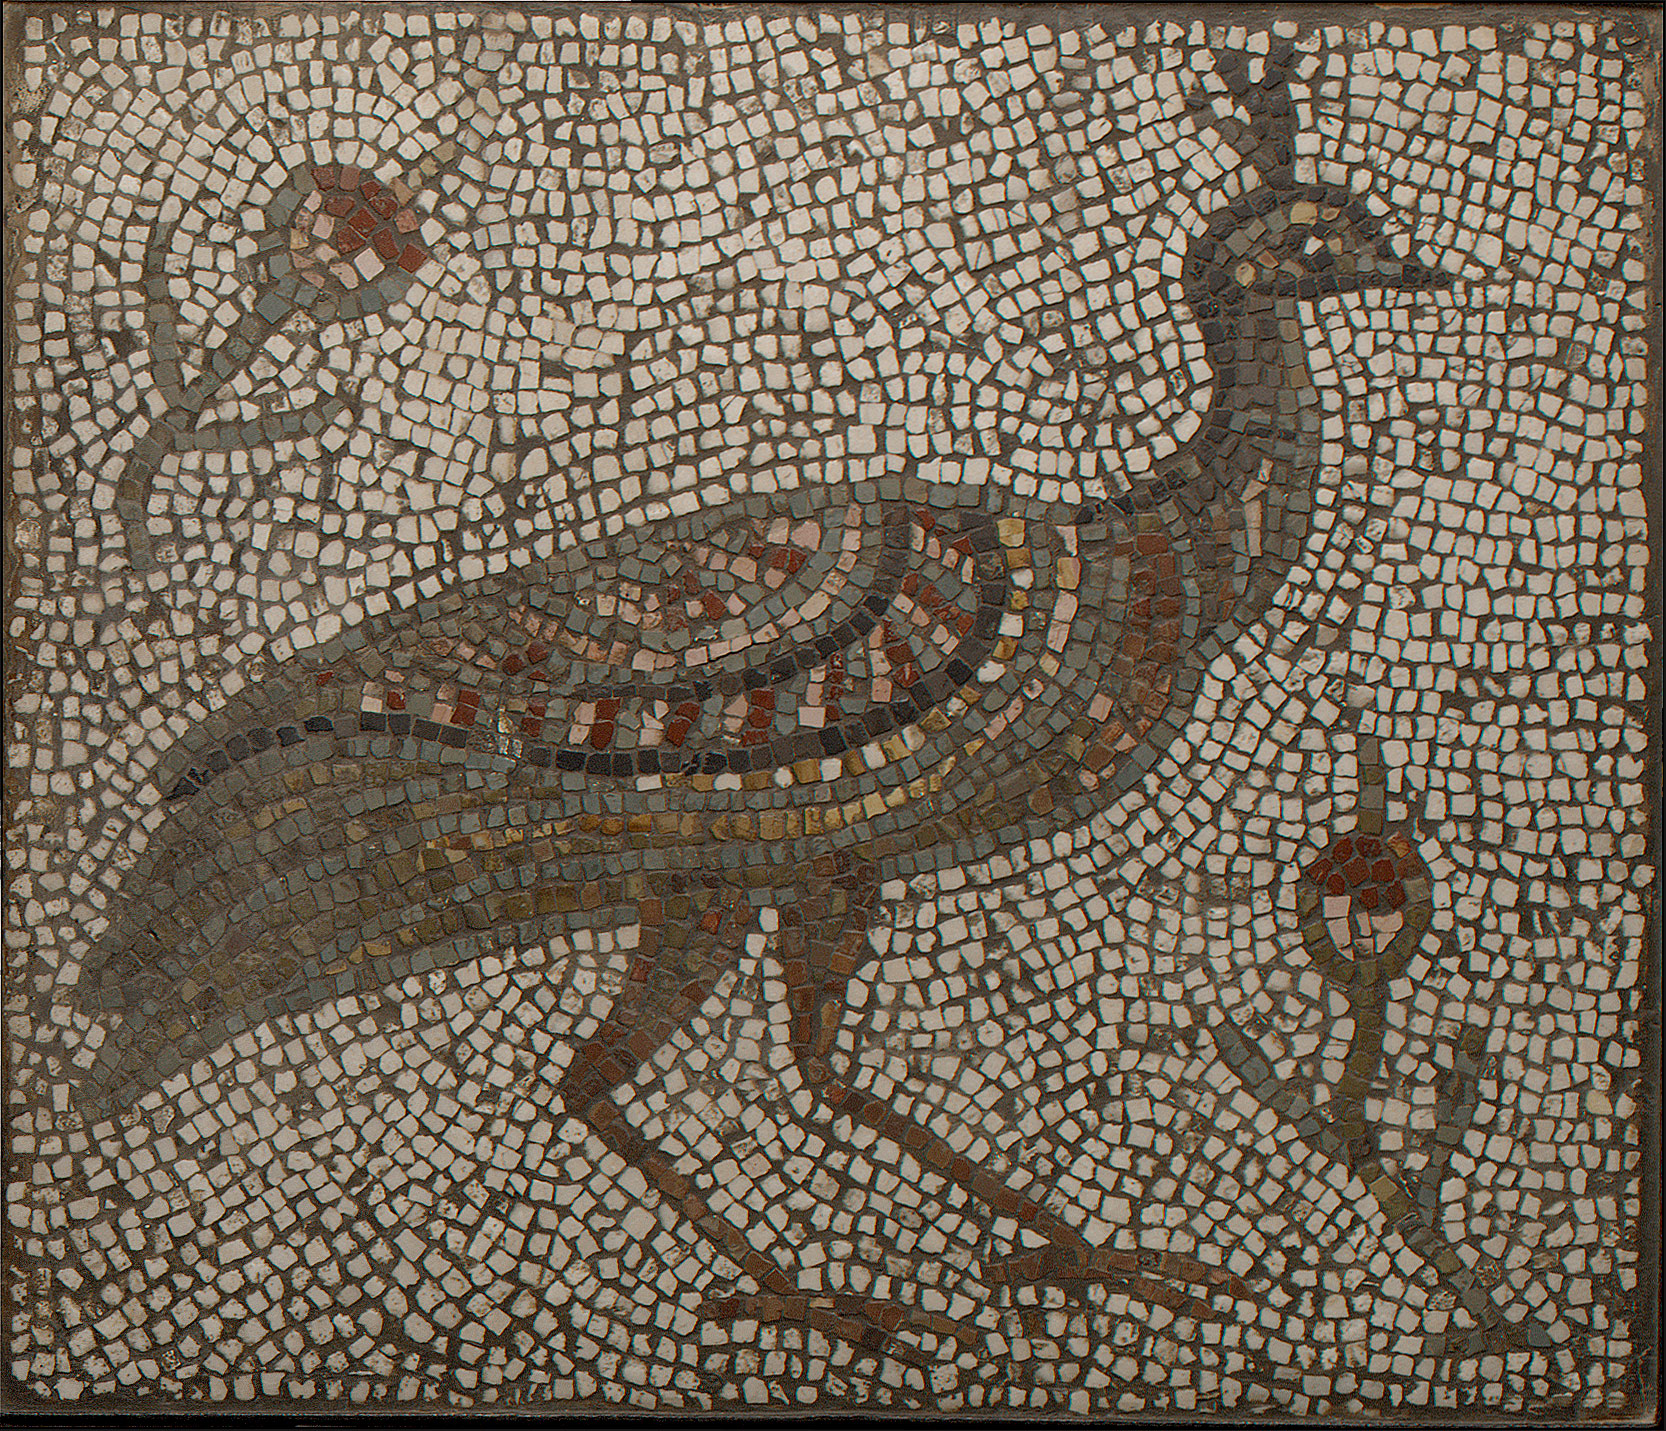 Mosaic with a Peacock and Flowers